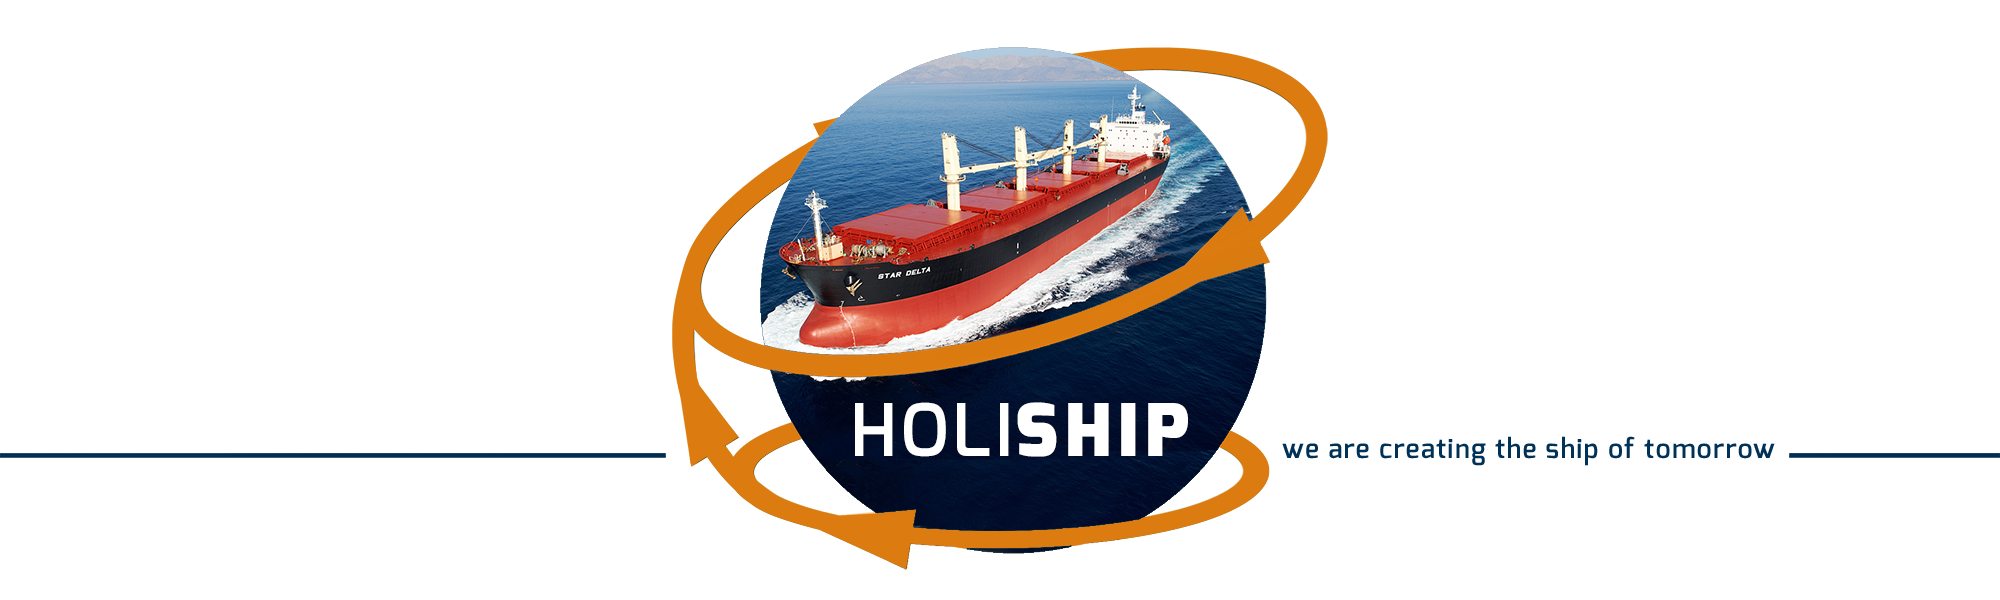 holiship logo 4 e